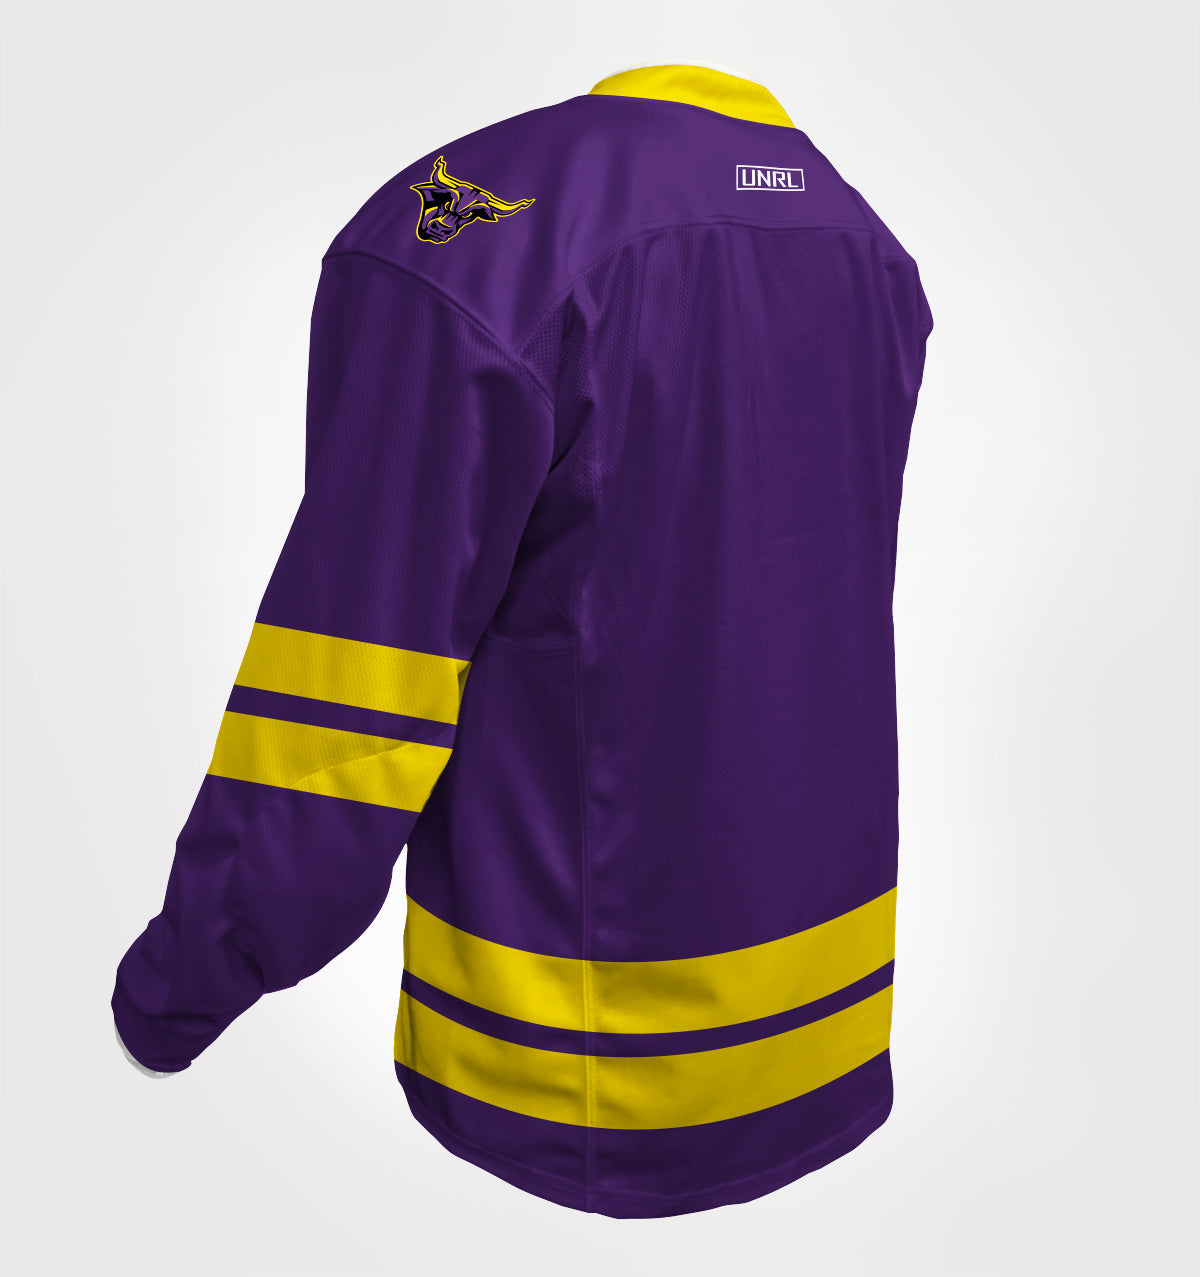 MNSU Mavericks Replica Hockey Jersey